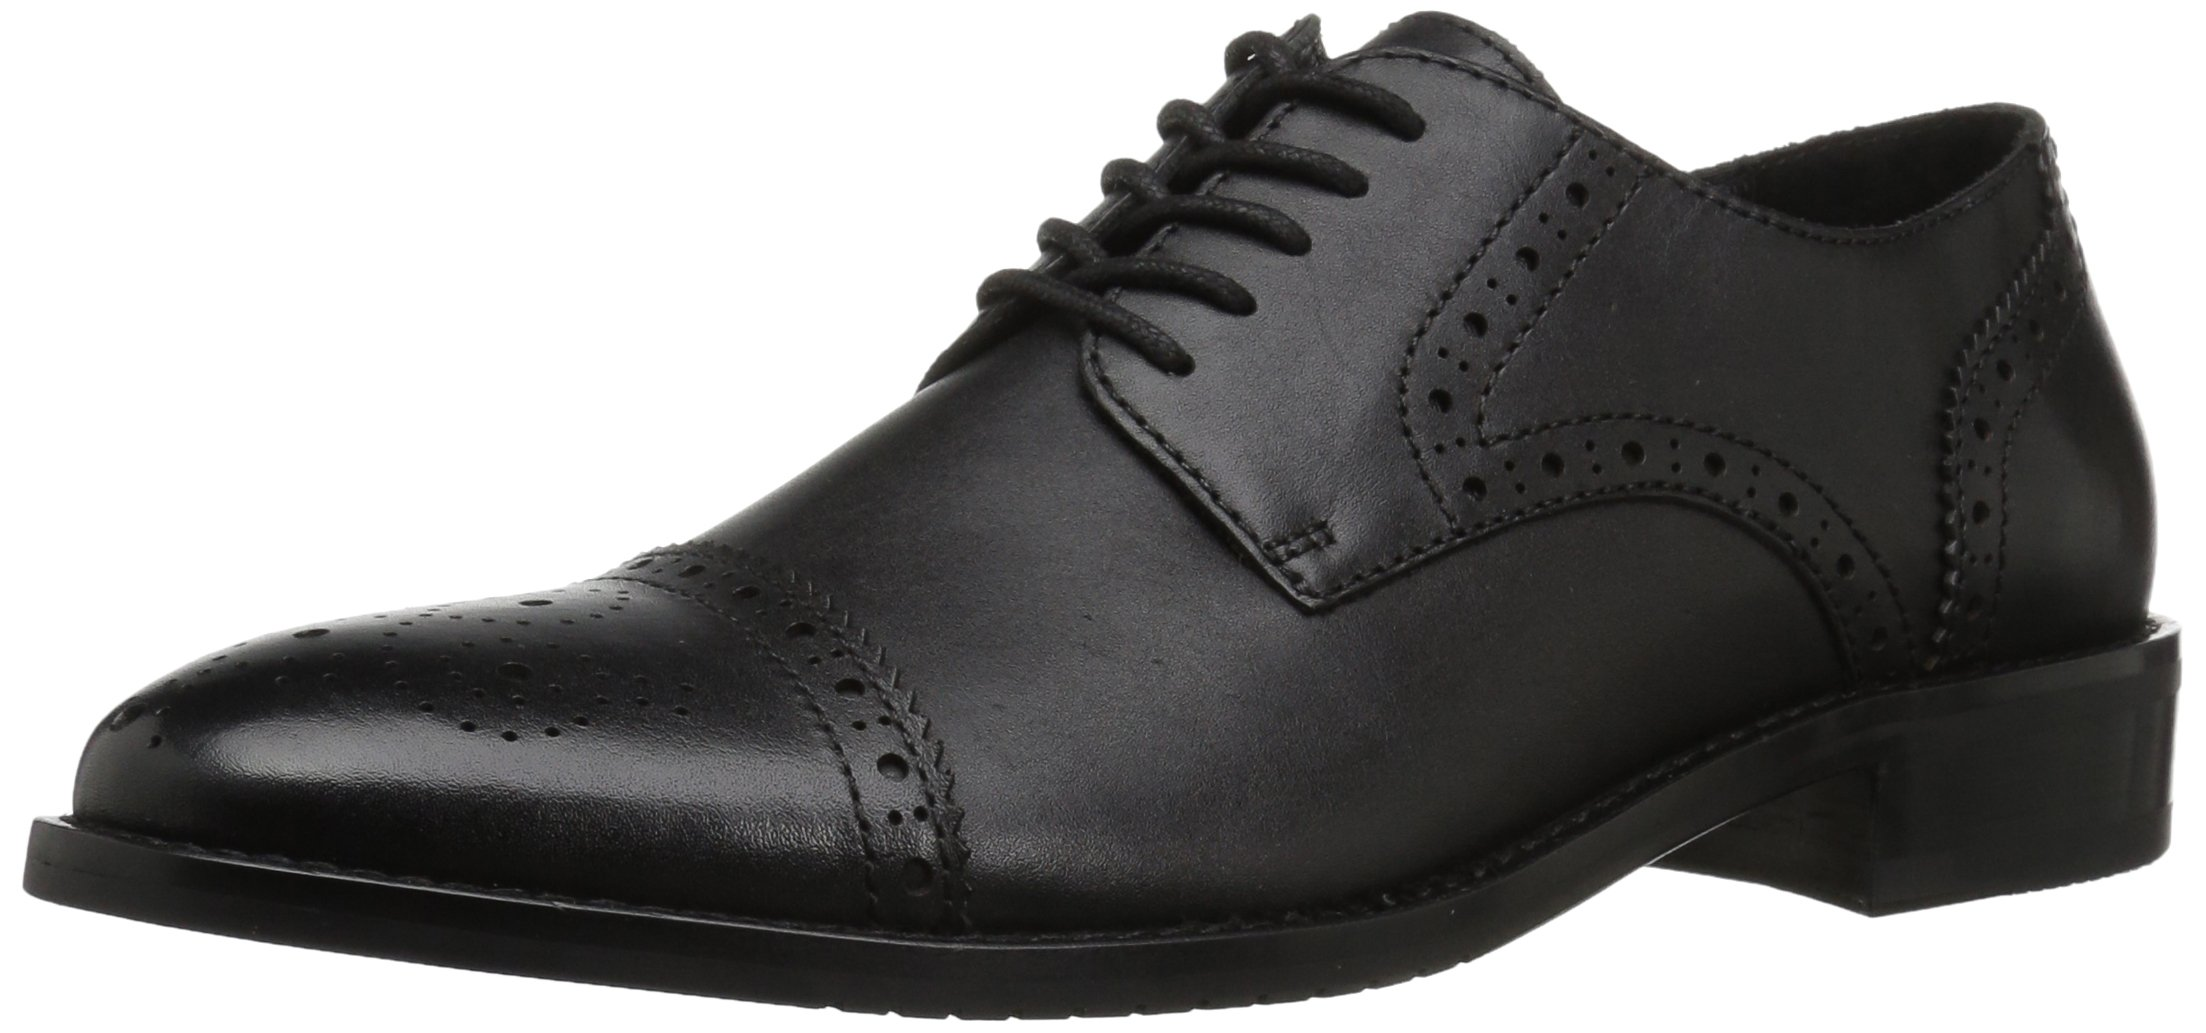 206 Collective Men's Georgetown Cap-Toe Oxford, Black, 11.5 D US